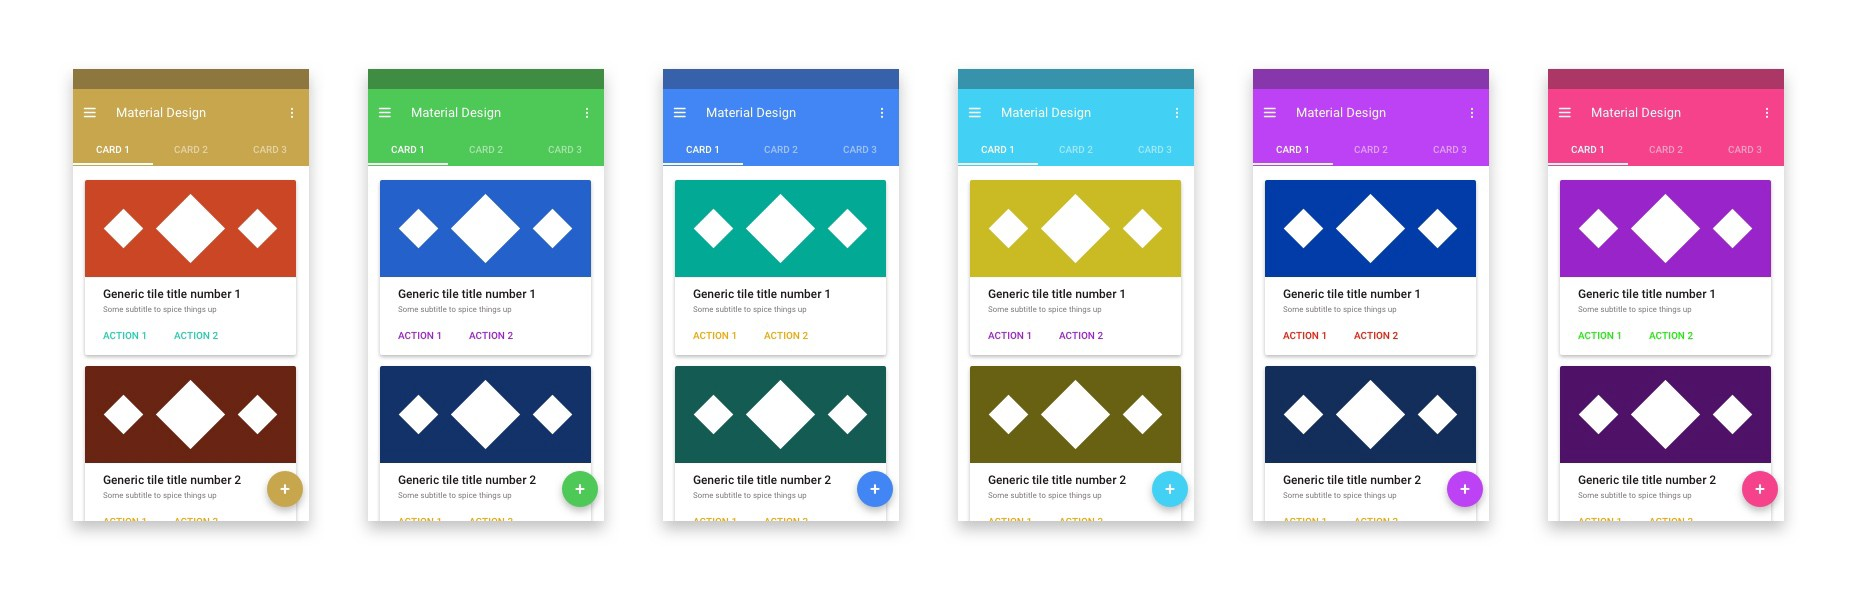 material design apps all look the same